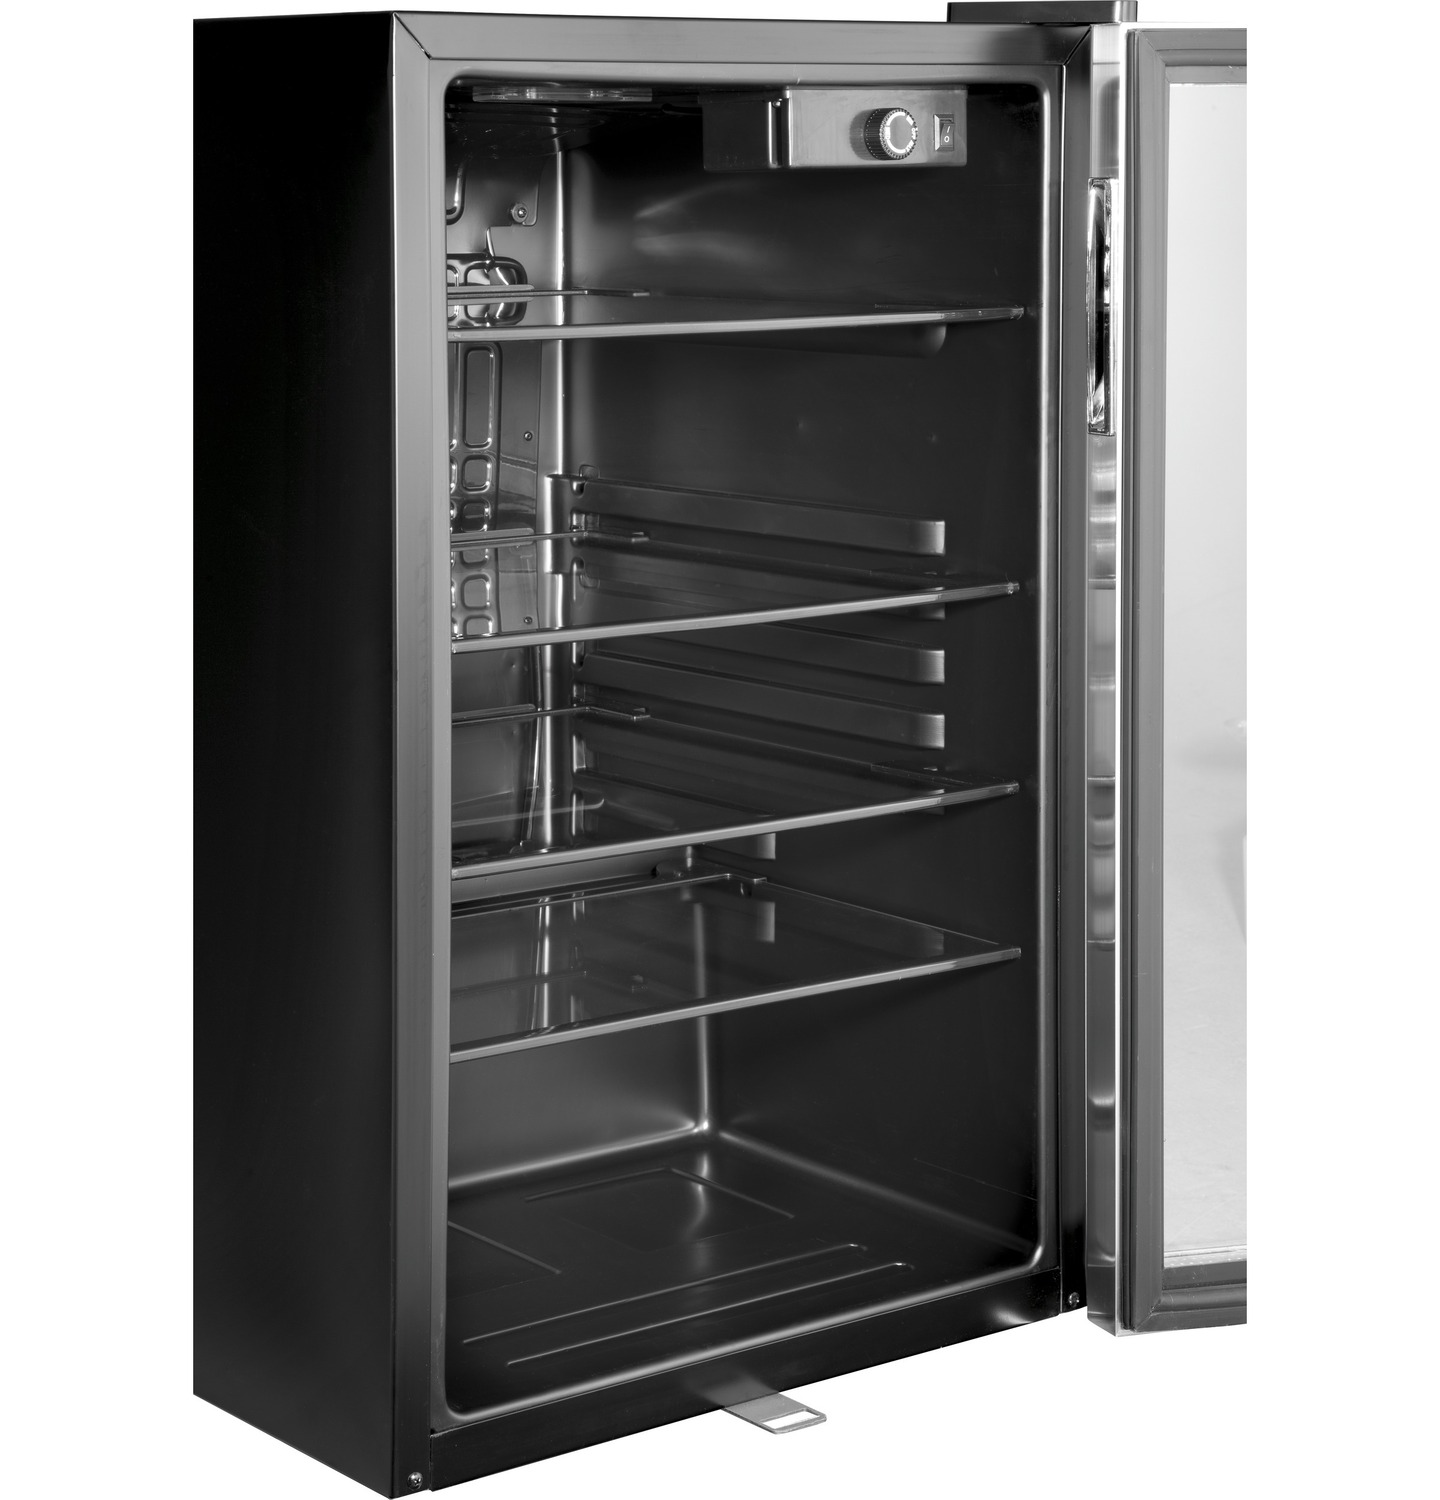 Hebf100bxs Haier Appliance 150 Can Beverage Center Fred